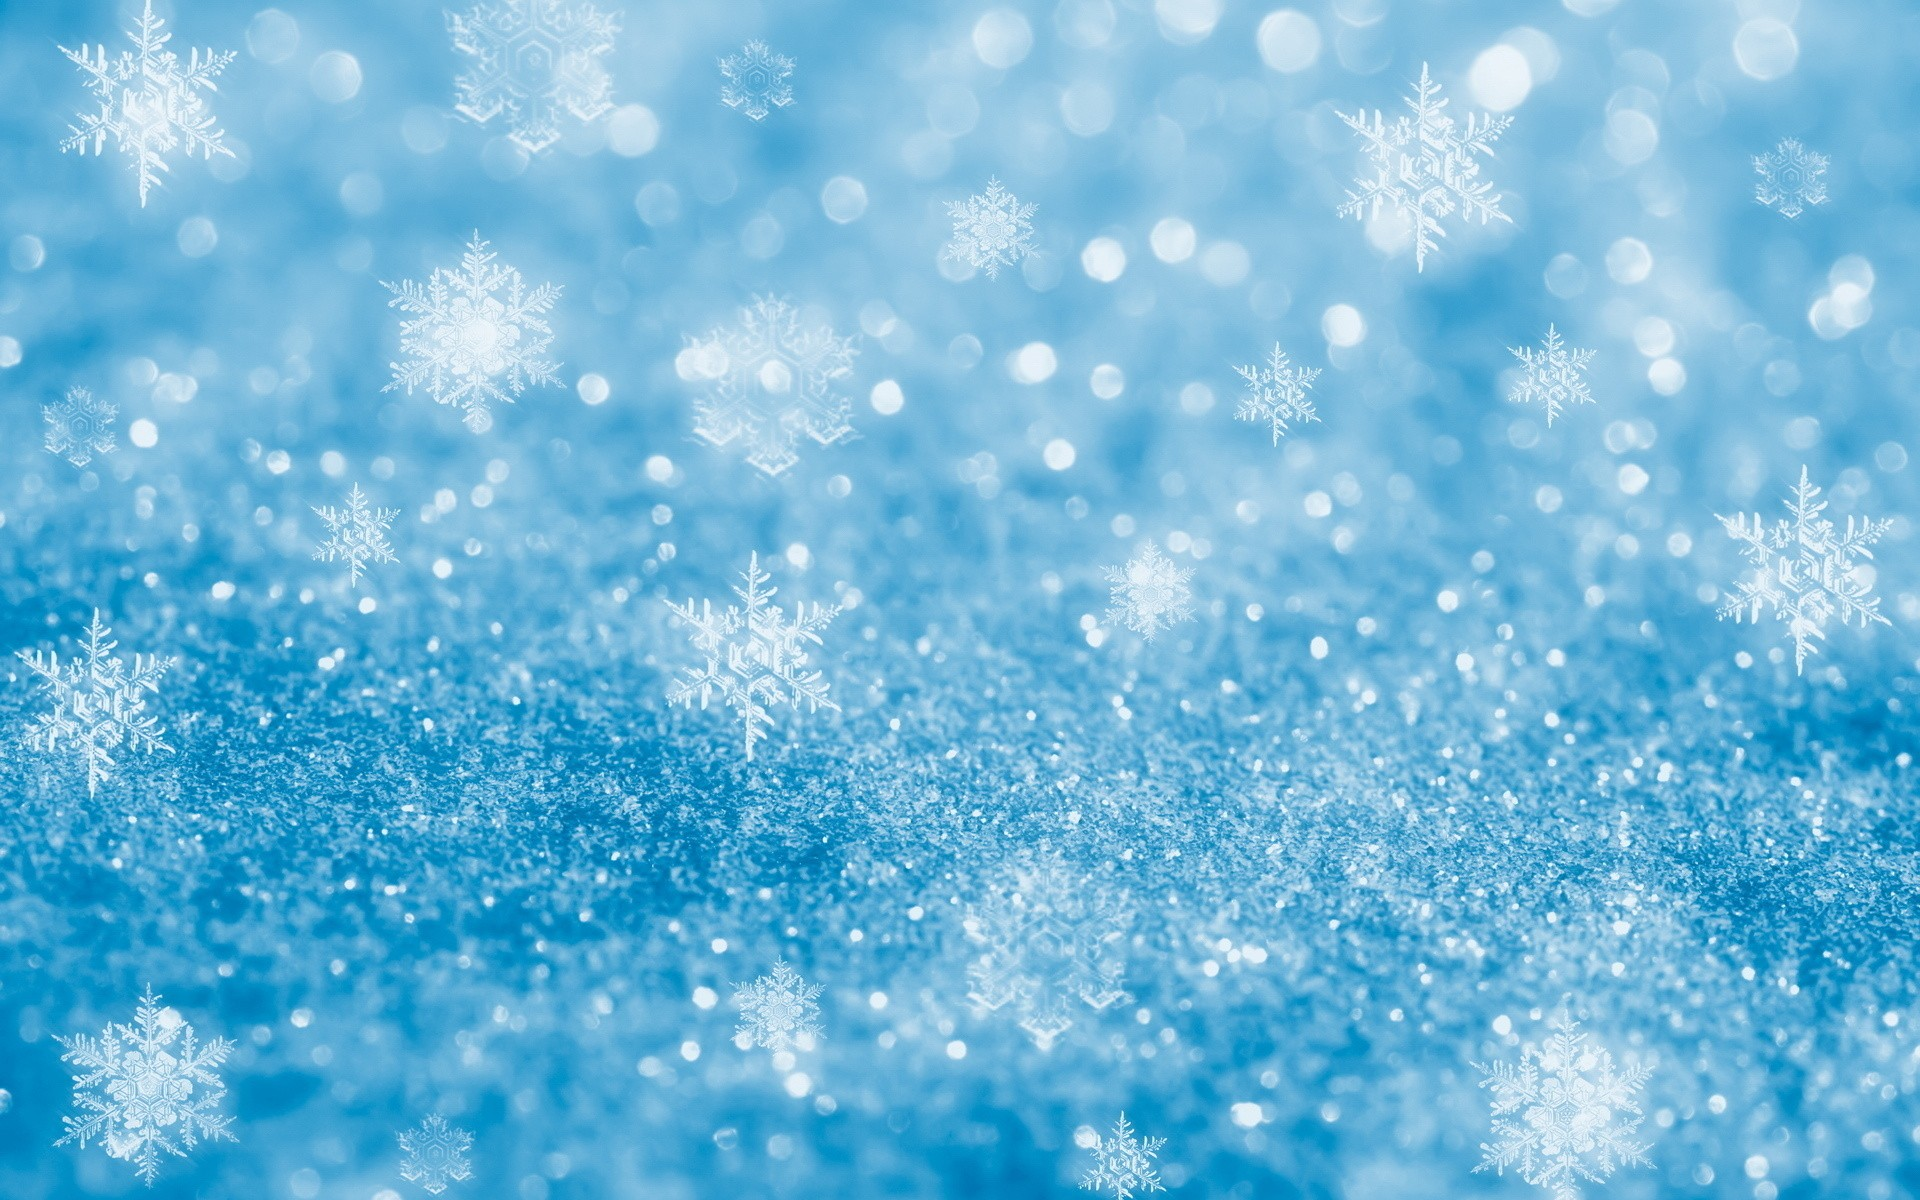 Snow Falling Wallpaper For Ipad Purple Glitter Background 183 ① Download Free Beautiful